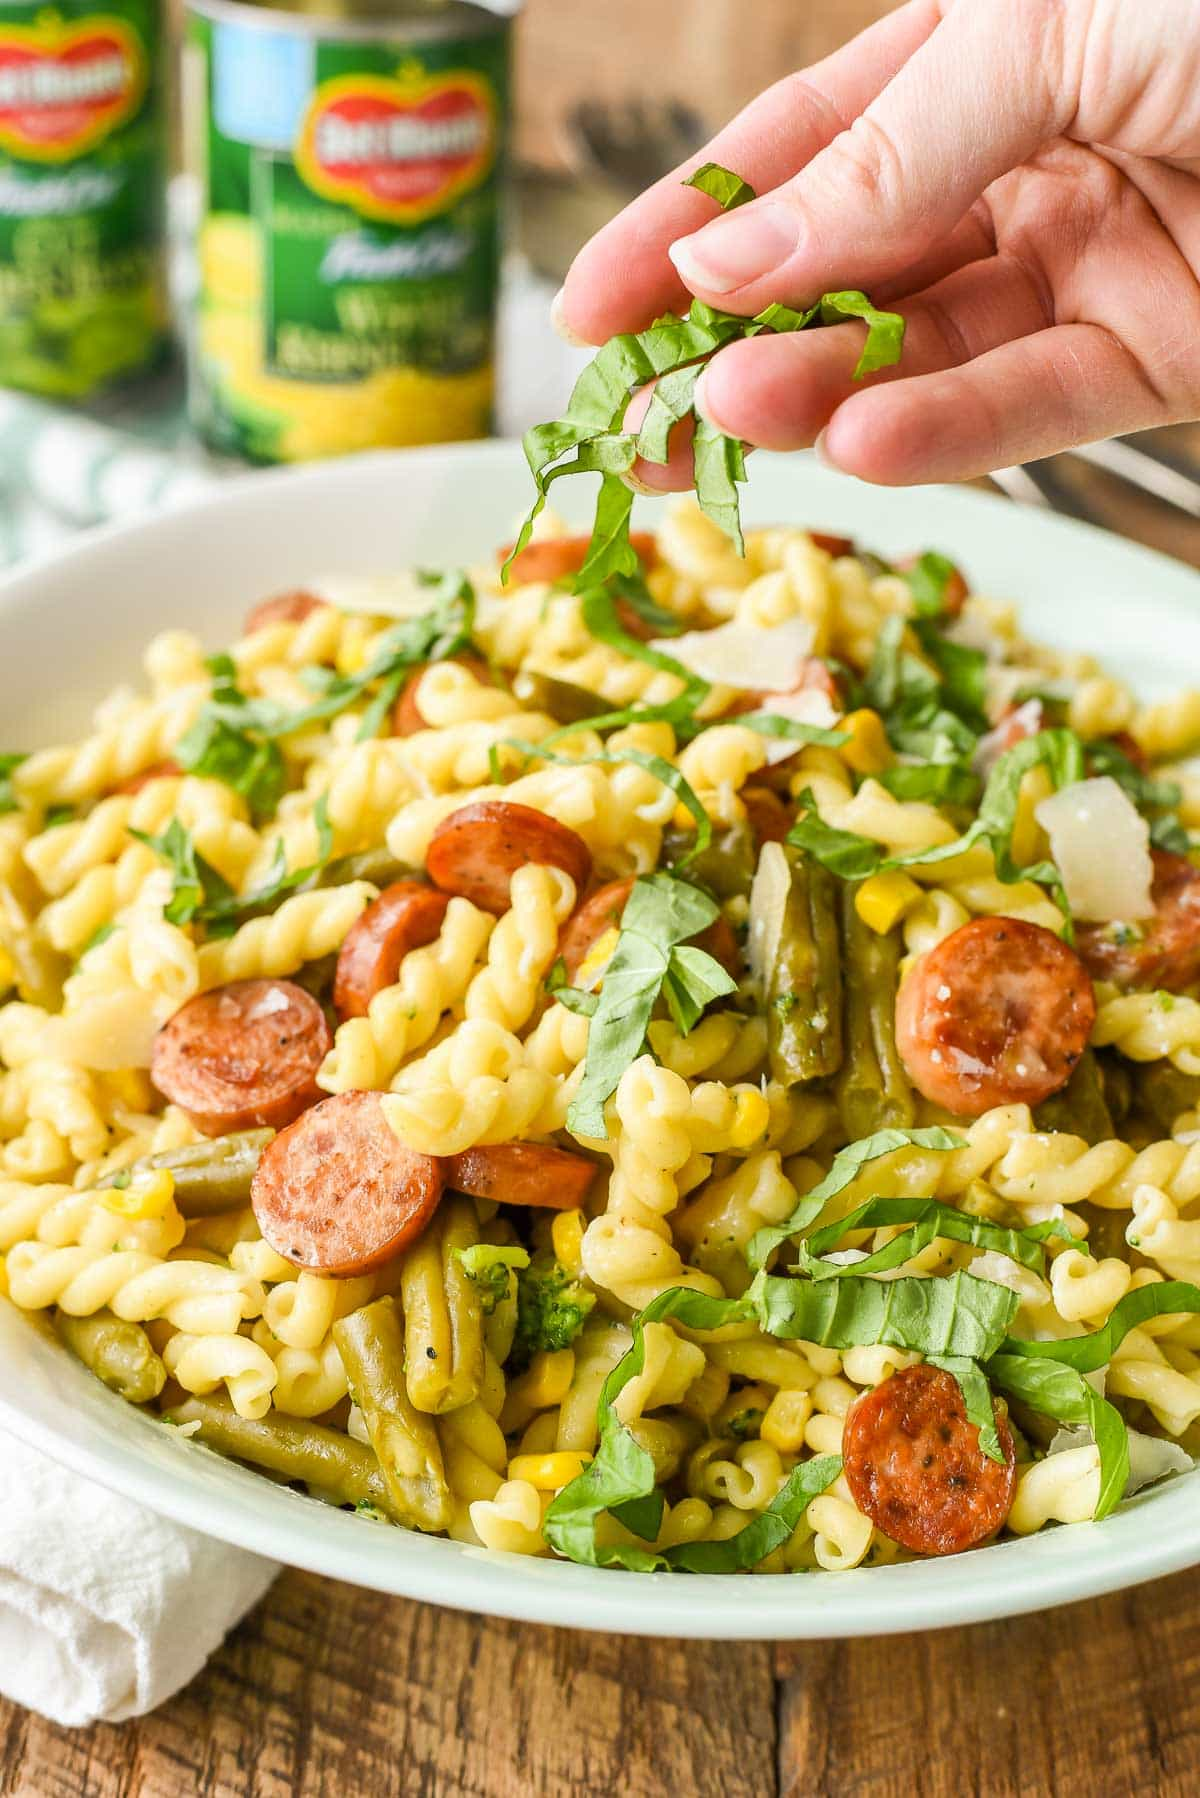 Easy Parmesan Pasta with Chicken Sausage and Veggies made in under 30 minutes!